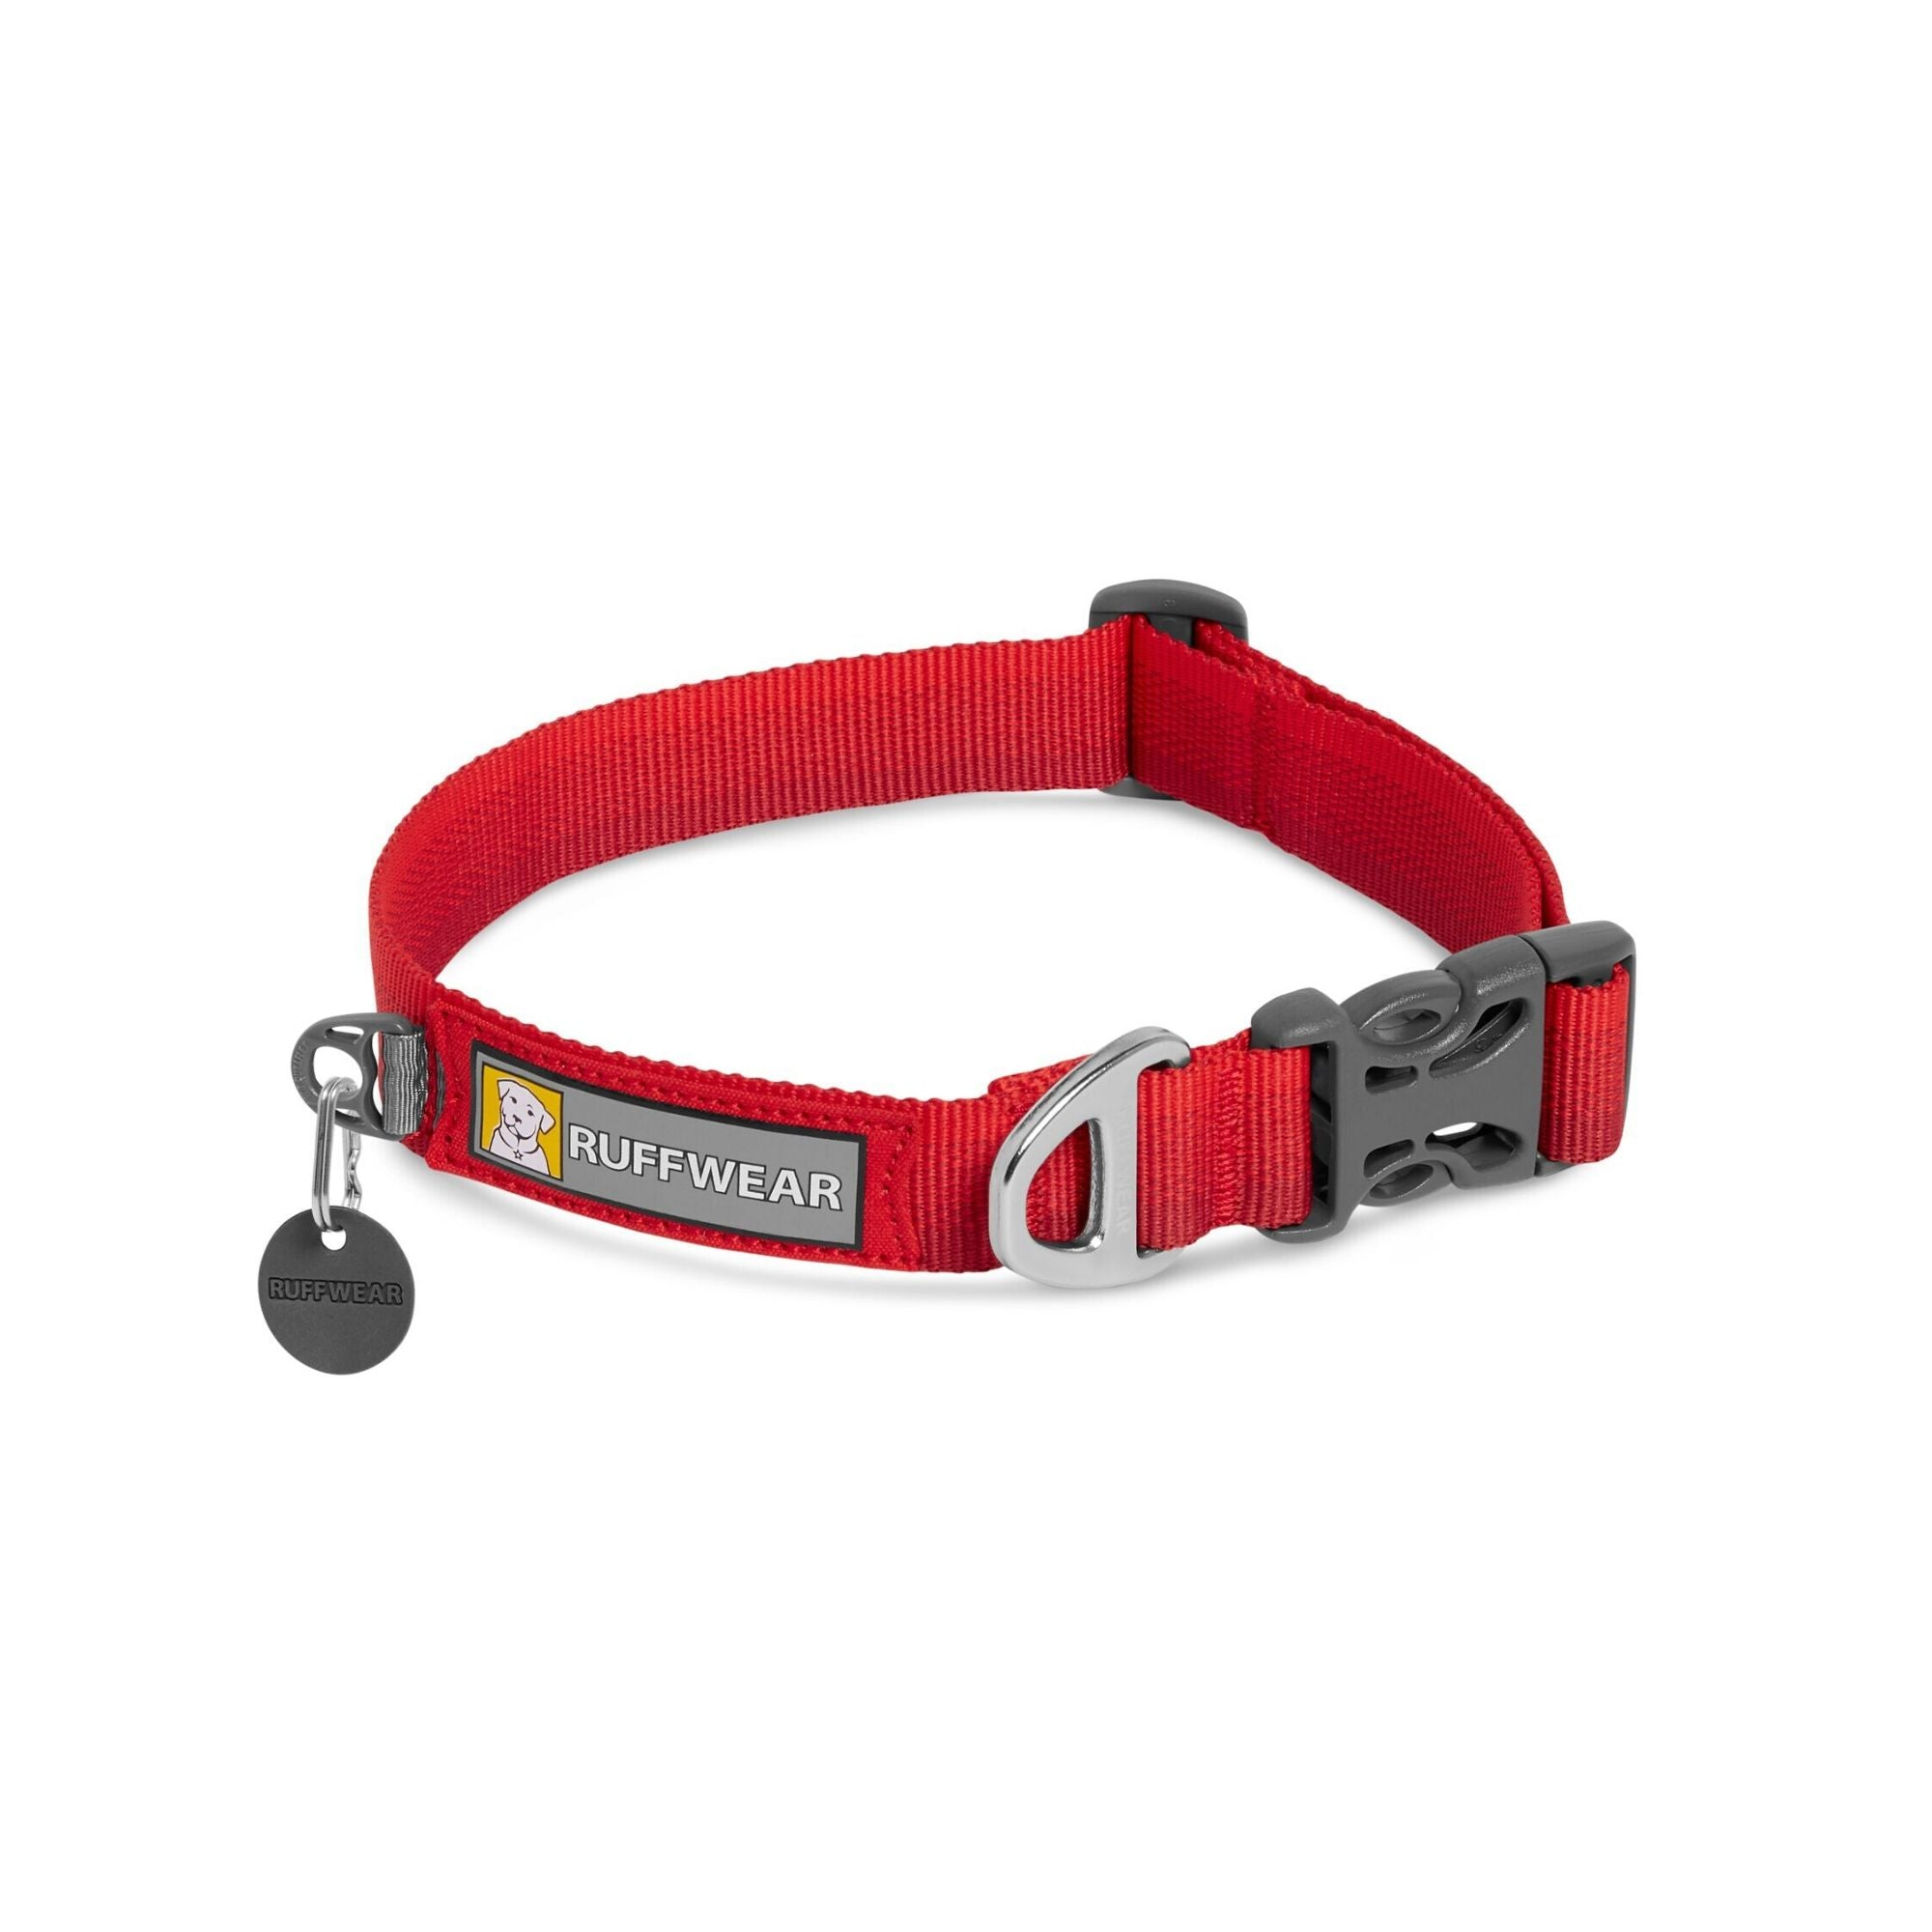 Ruffwear Front Range Collar, Plain Dog Collar UK | Barks & Bunnies